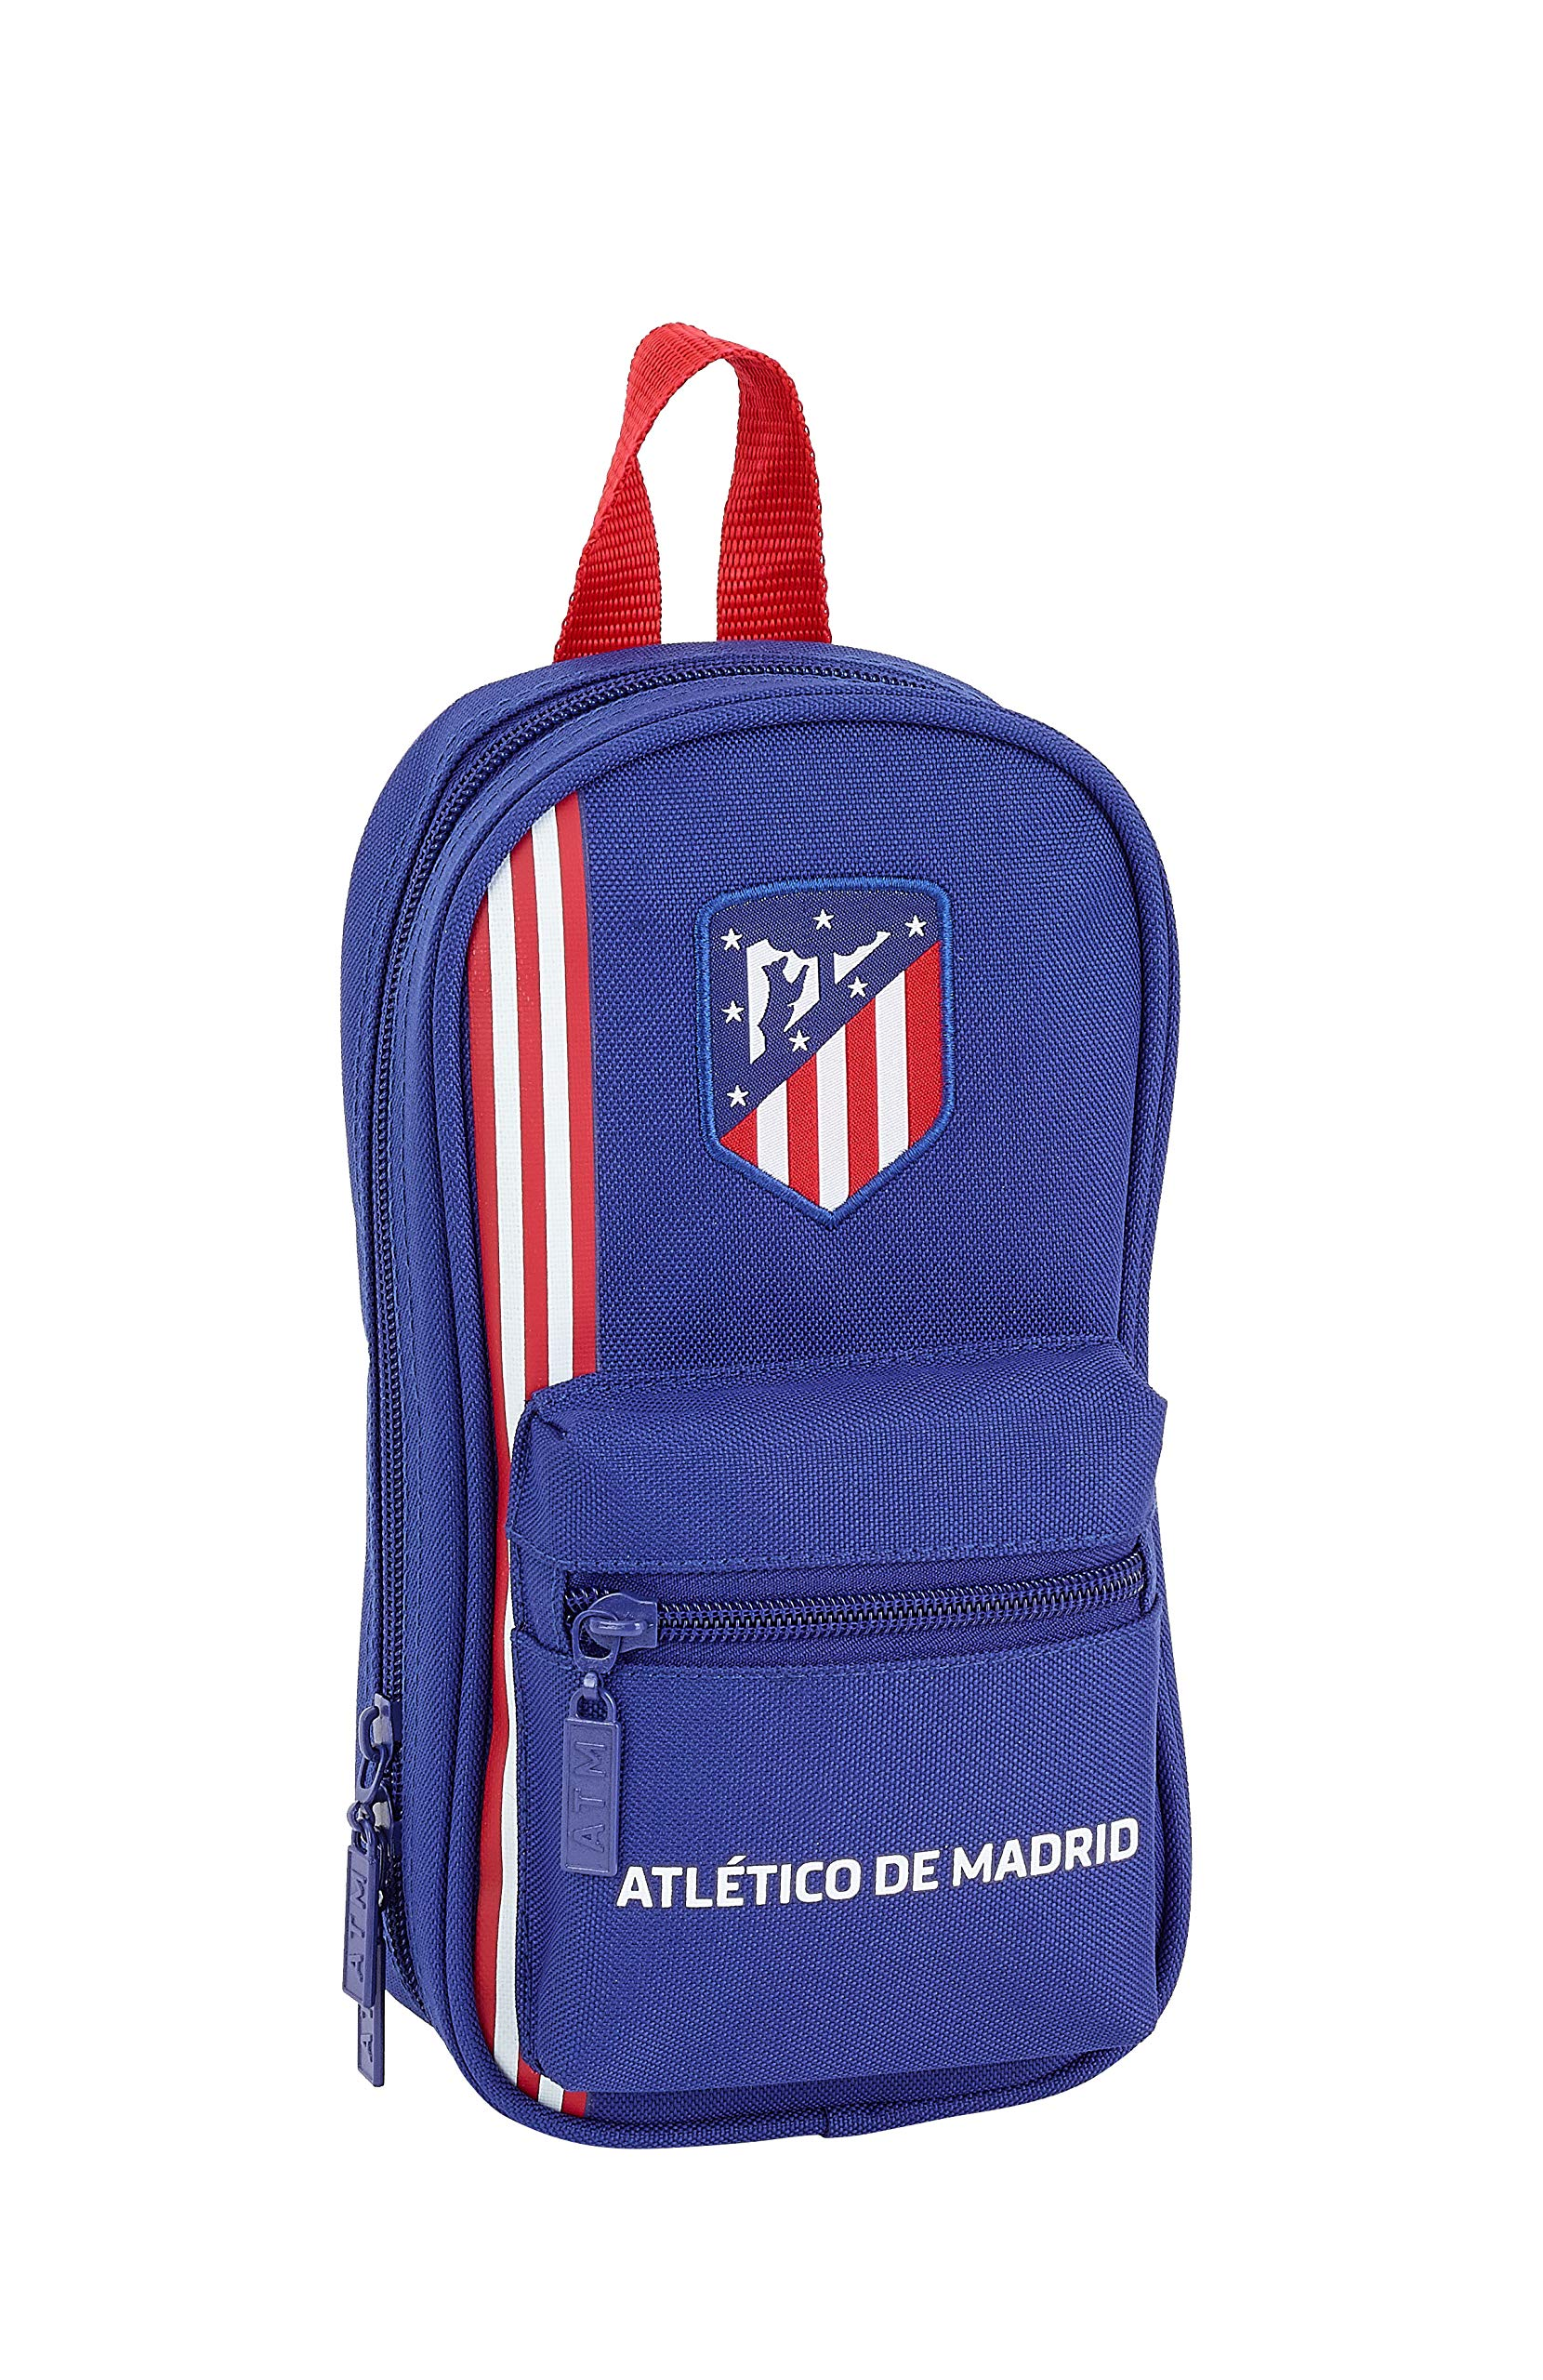 Atlético de Madrid «In Blue» Oficial Neceser Con 4 Estuches 120x50x230mm